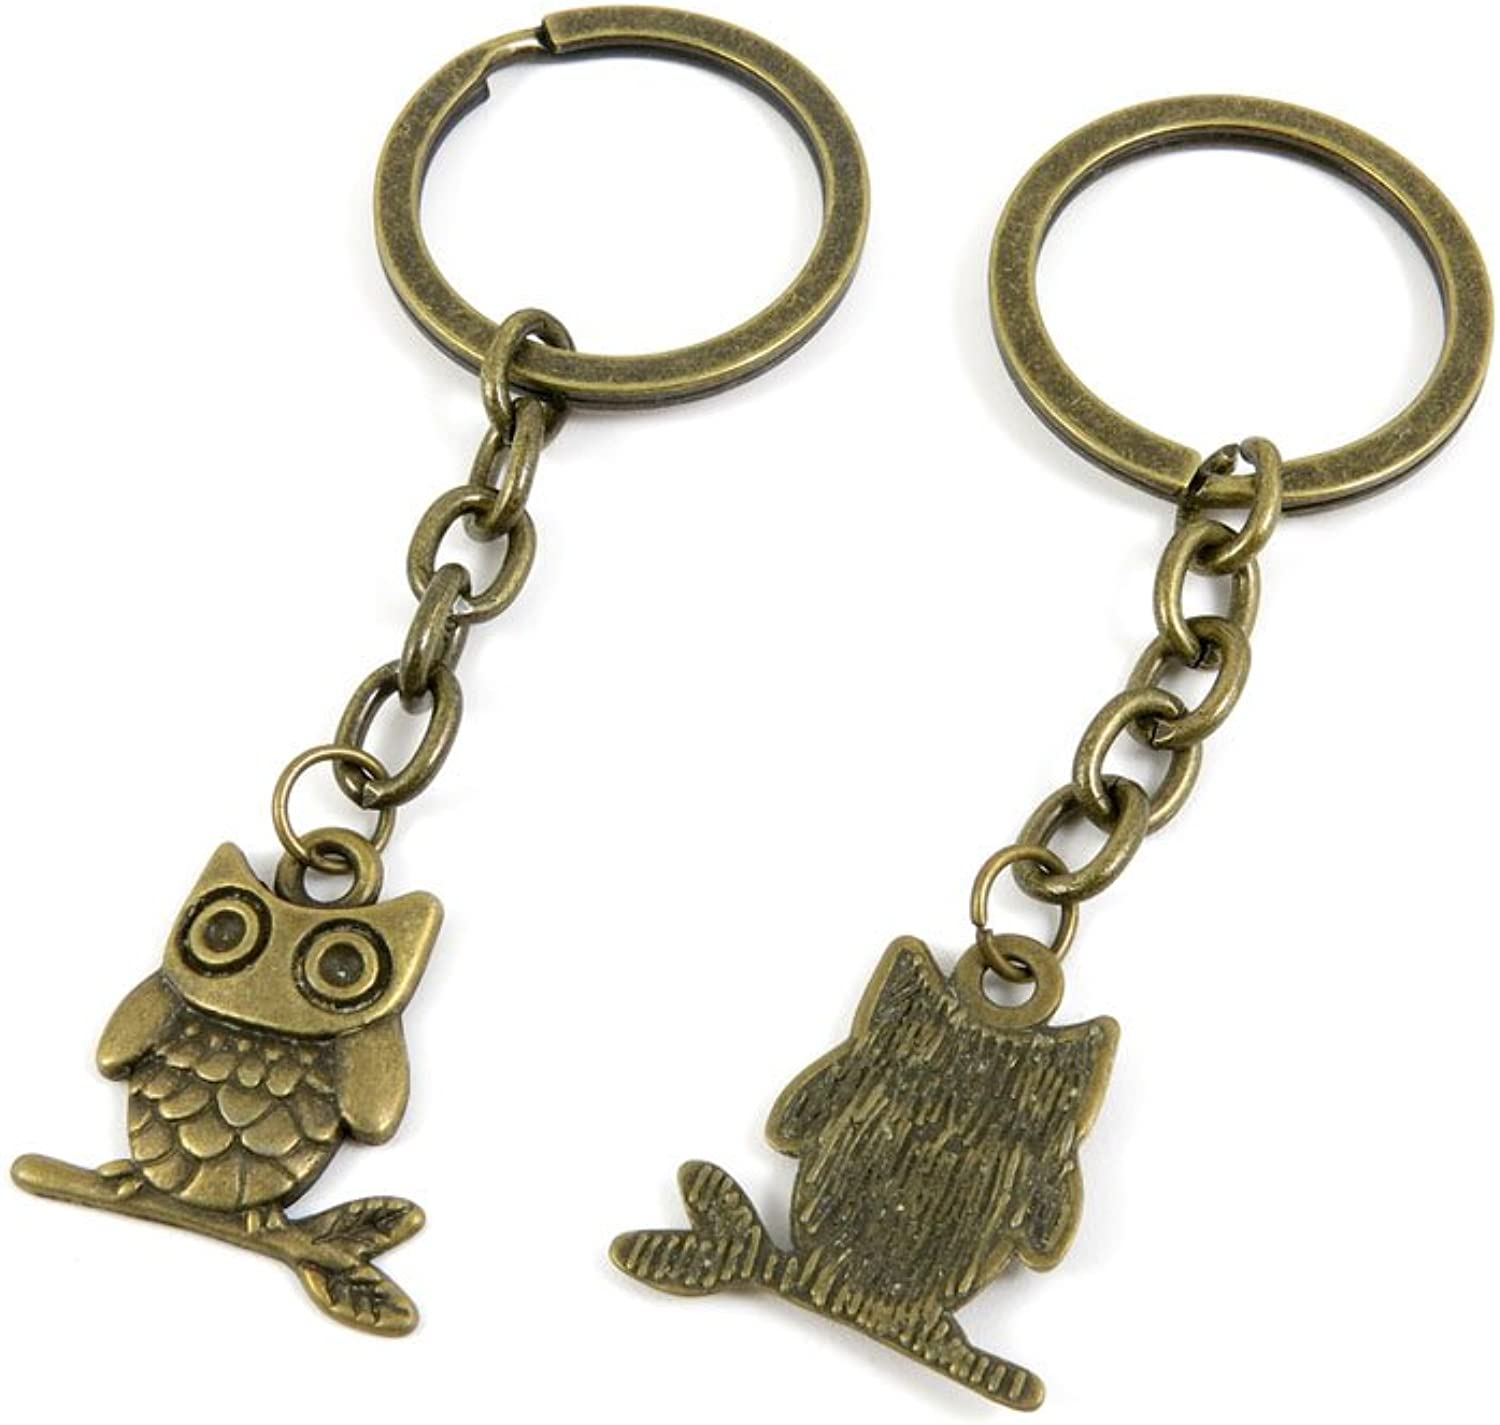 100 PCS Keyrings Keychains Key Ring Chains Tags Jewelry Findings Clasps Buckles Supplies S2NP3 Cute Owl